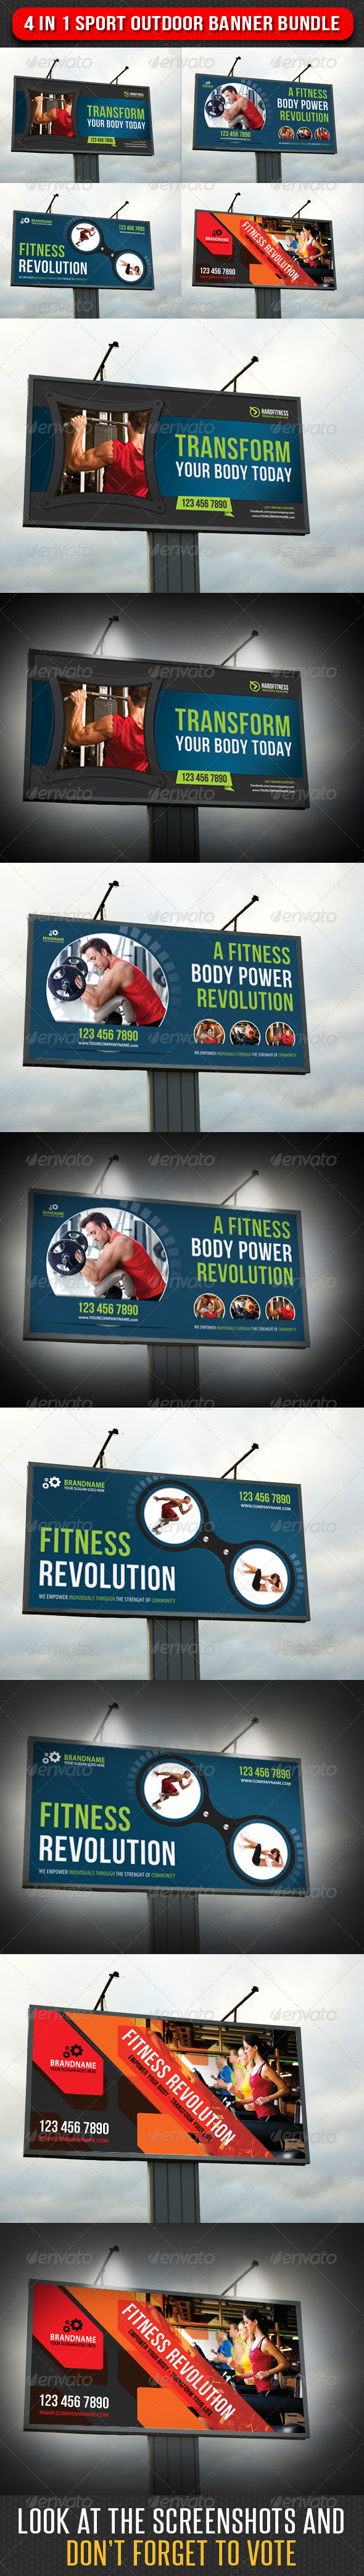 4 in 1 Sport Outdoor Banner Bundle 02 - Signage Print Templates